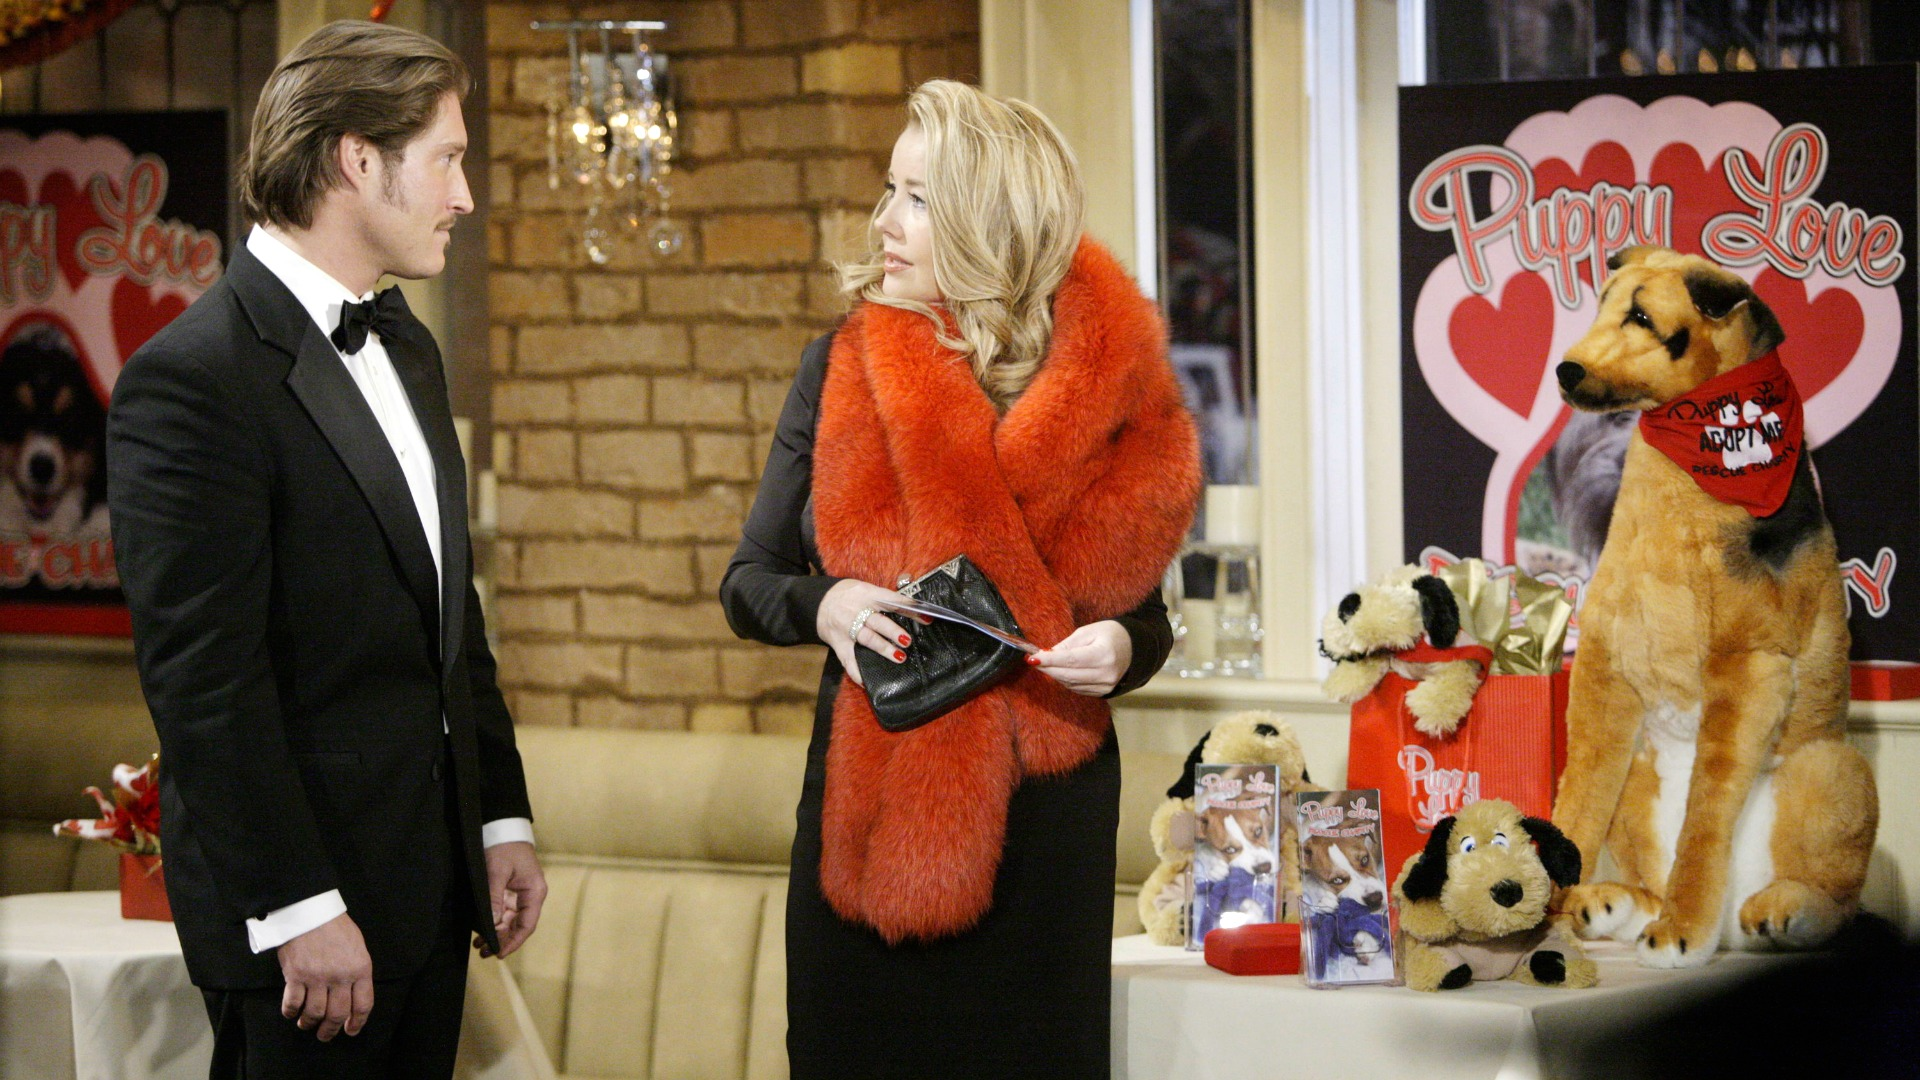 Deacon Sharpe moved to Genoa City and wasted no time in romancing Nikki Newman (Melody Thomas Scott).